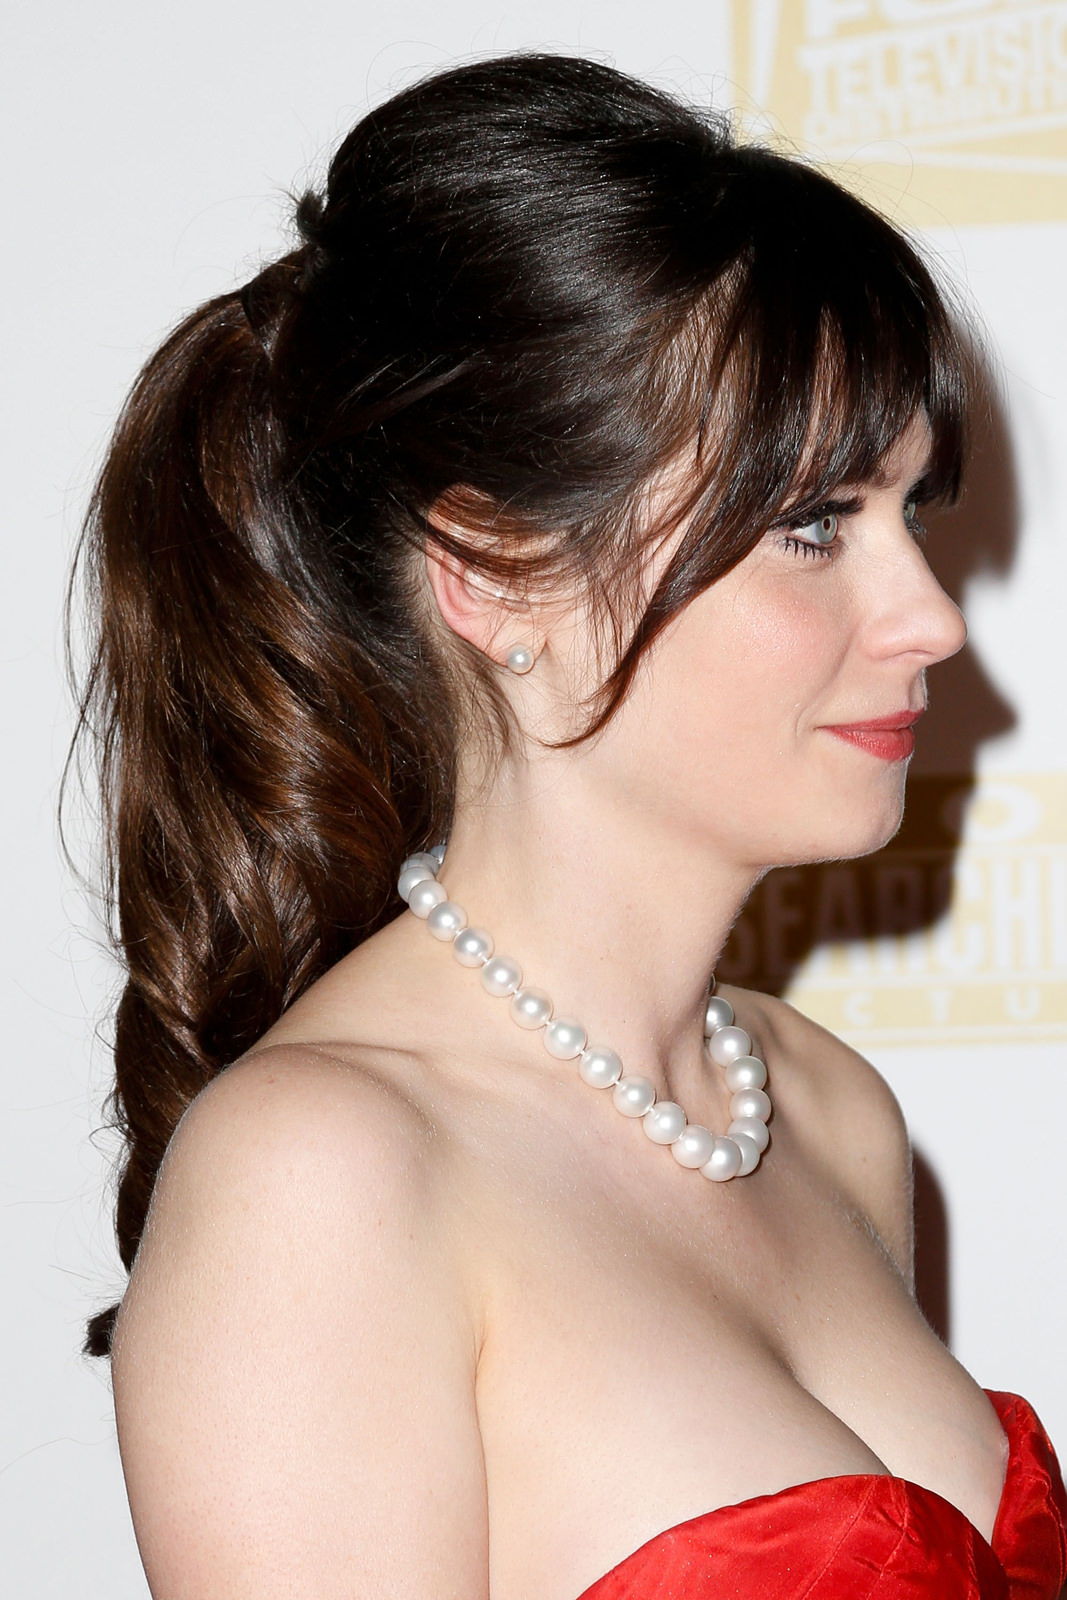 Zooey Deschanel Photo Gallery